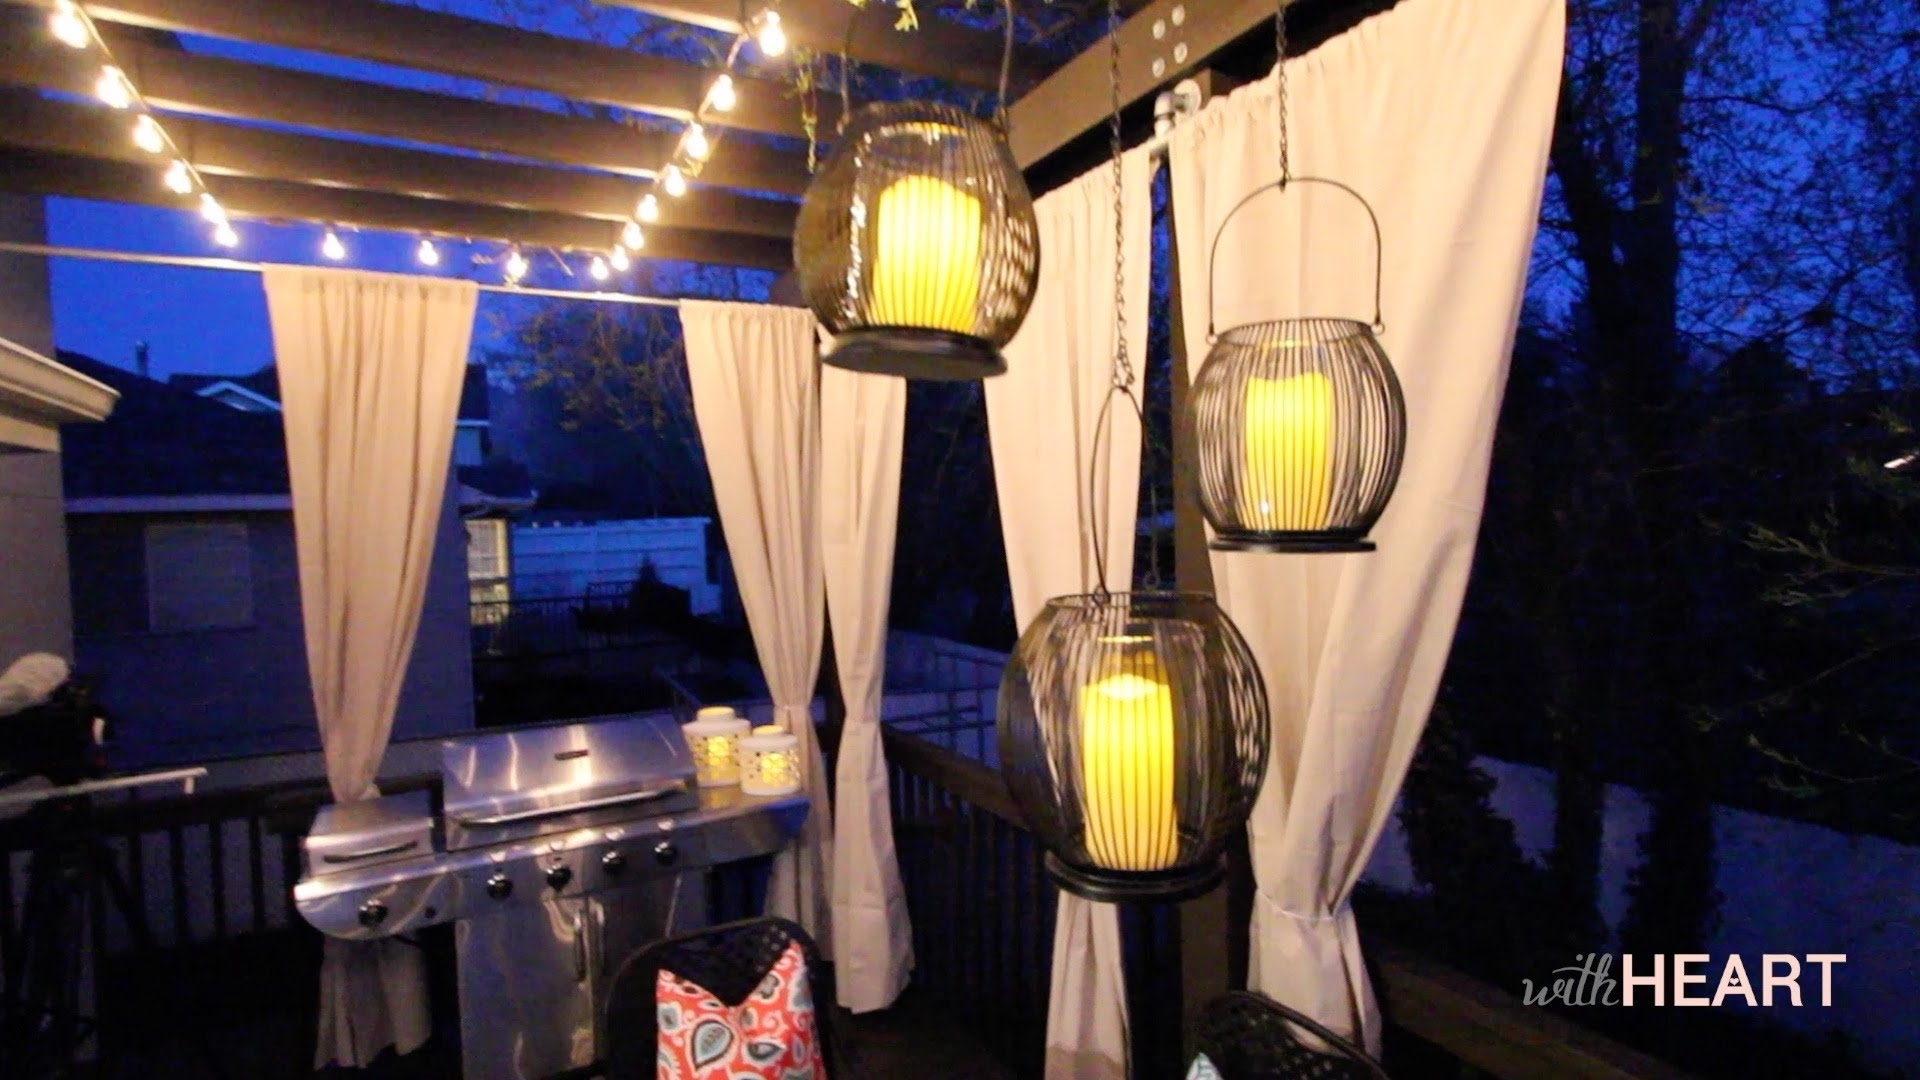 Outdoor String Lights And Hanging Lanterns | Withheart – Youtube With Regard To Outdoor Paper Lanterns For Patio (View 10 of 20)